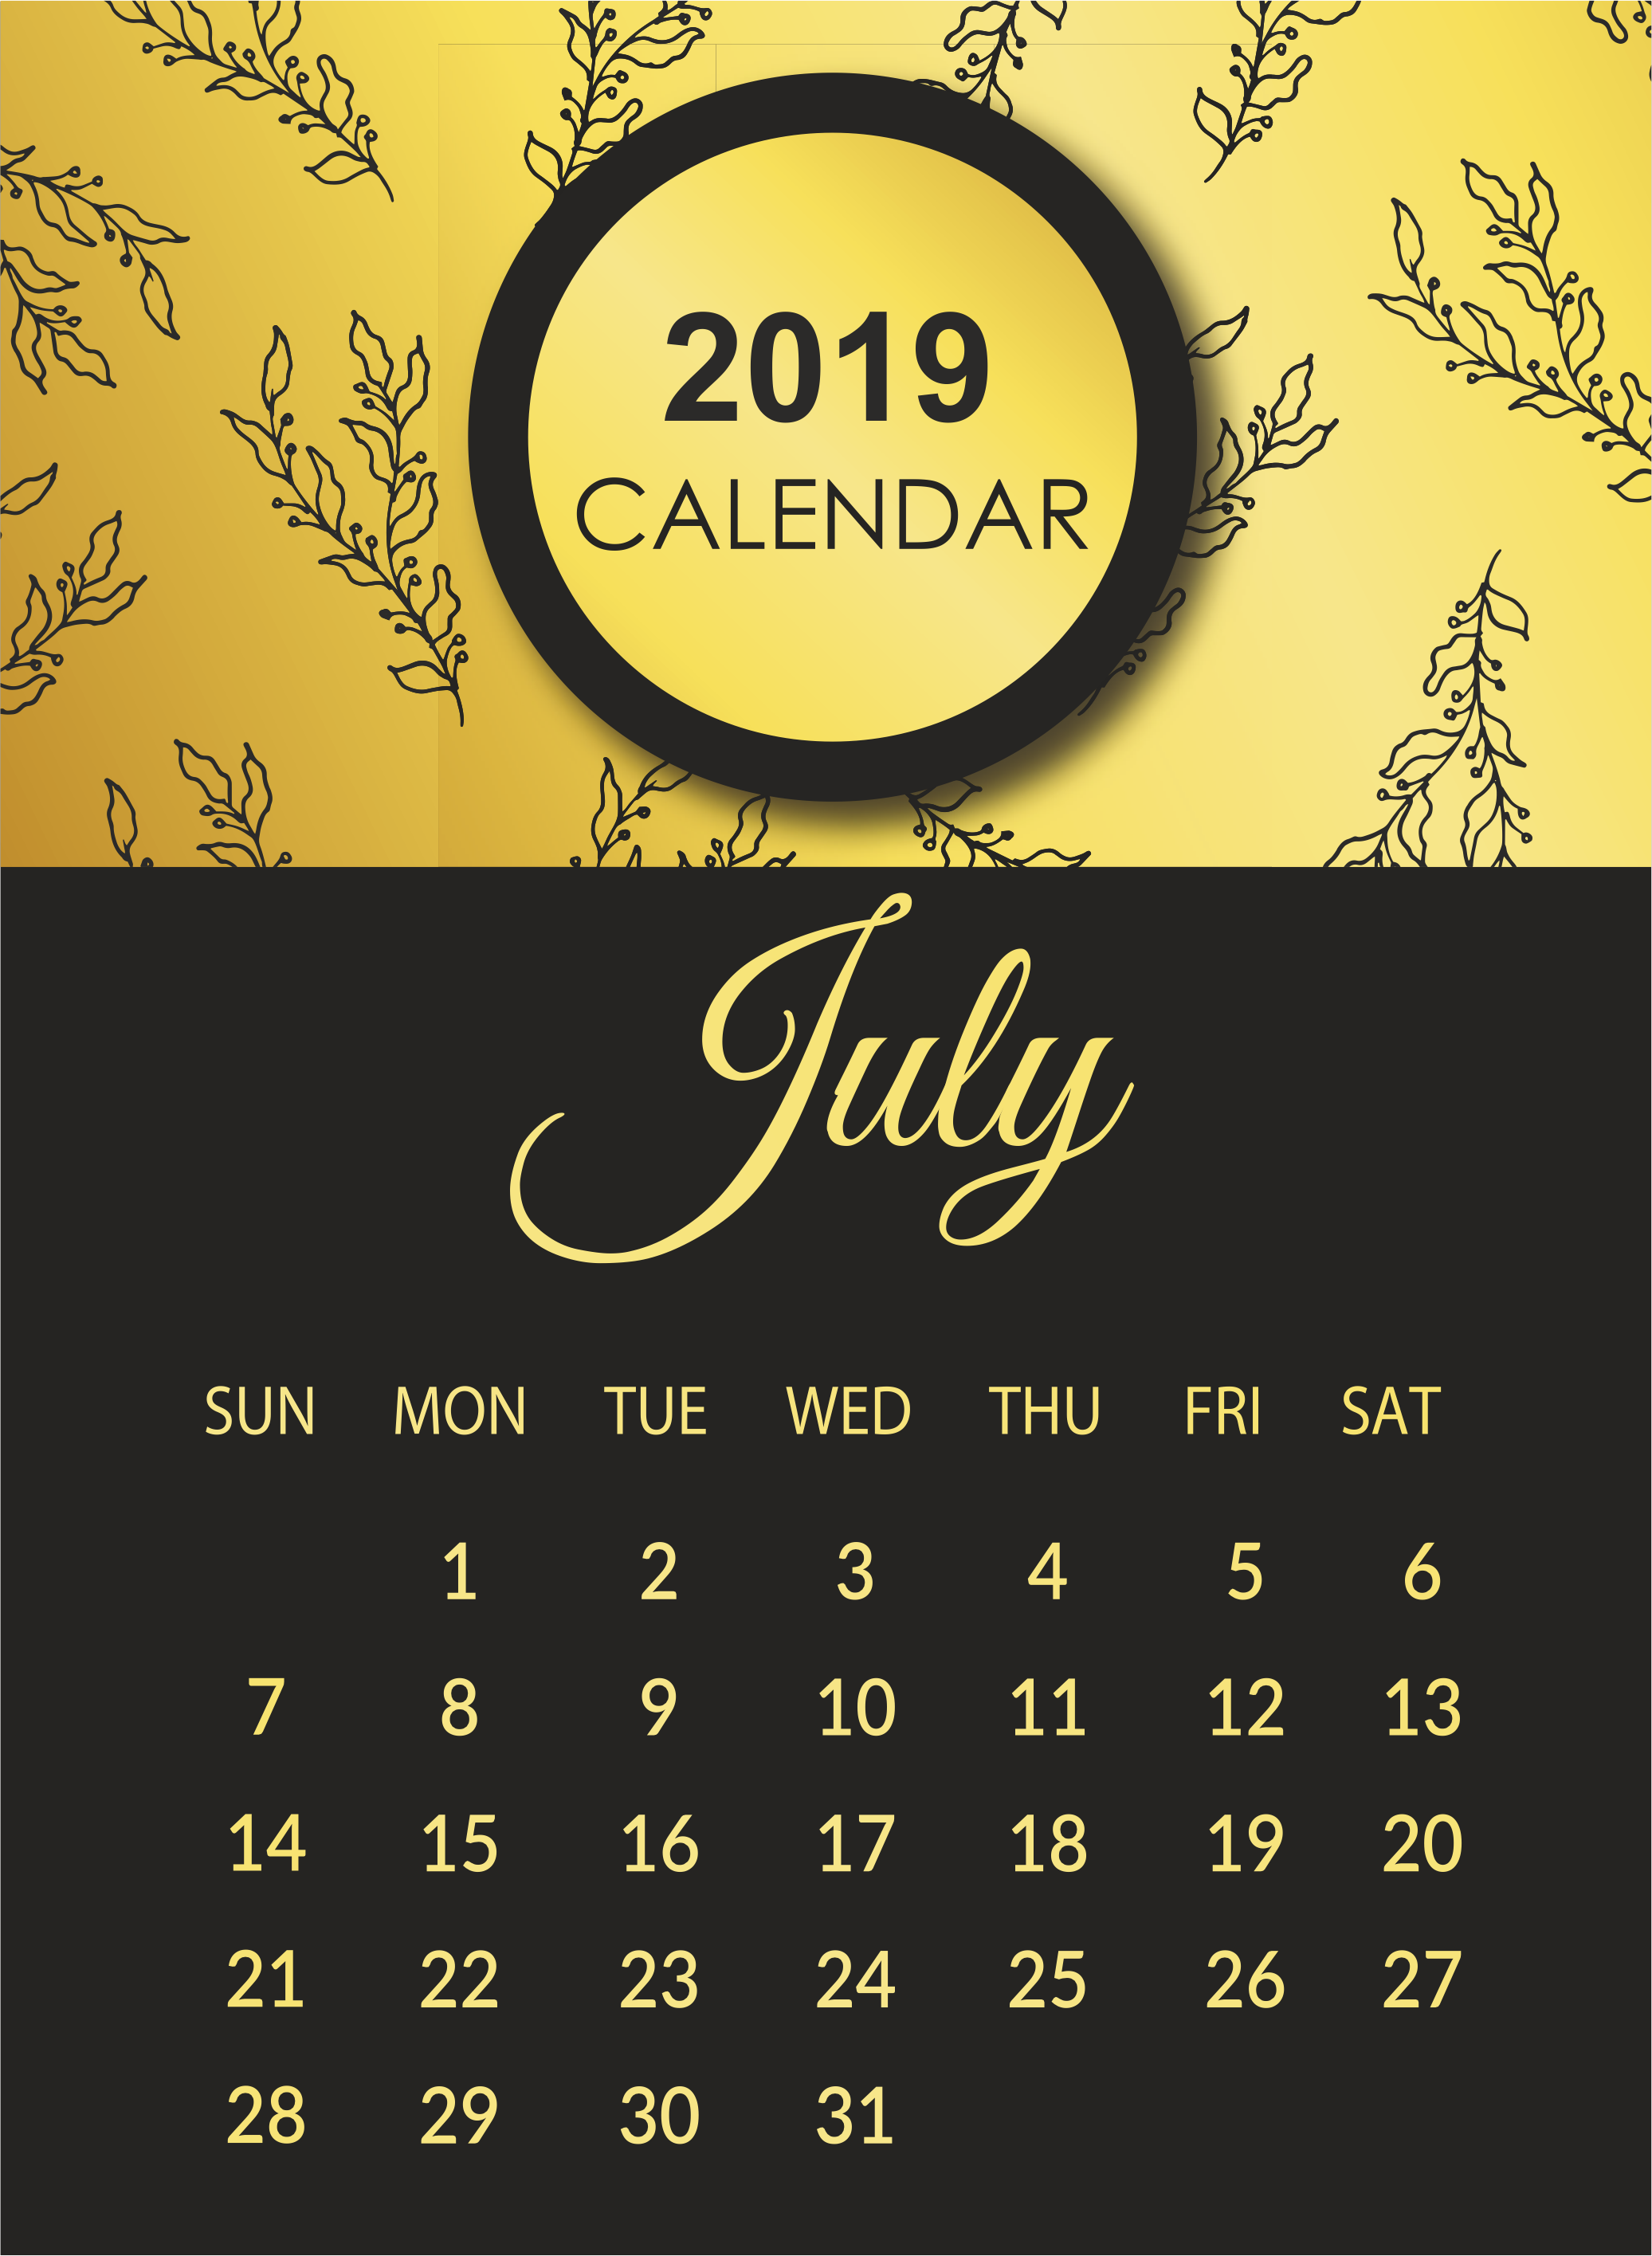 July 2019 Wall Calendar Template